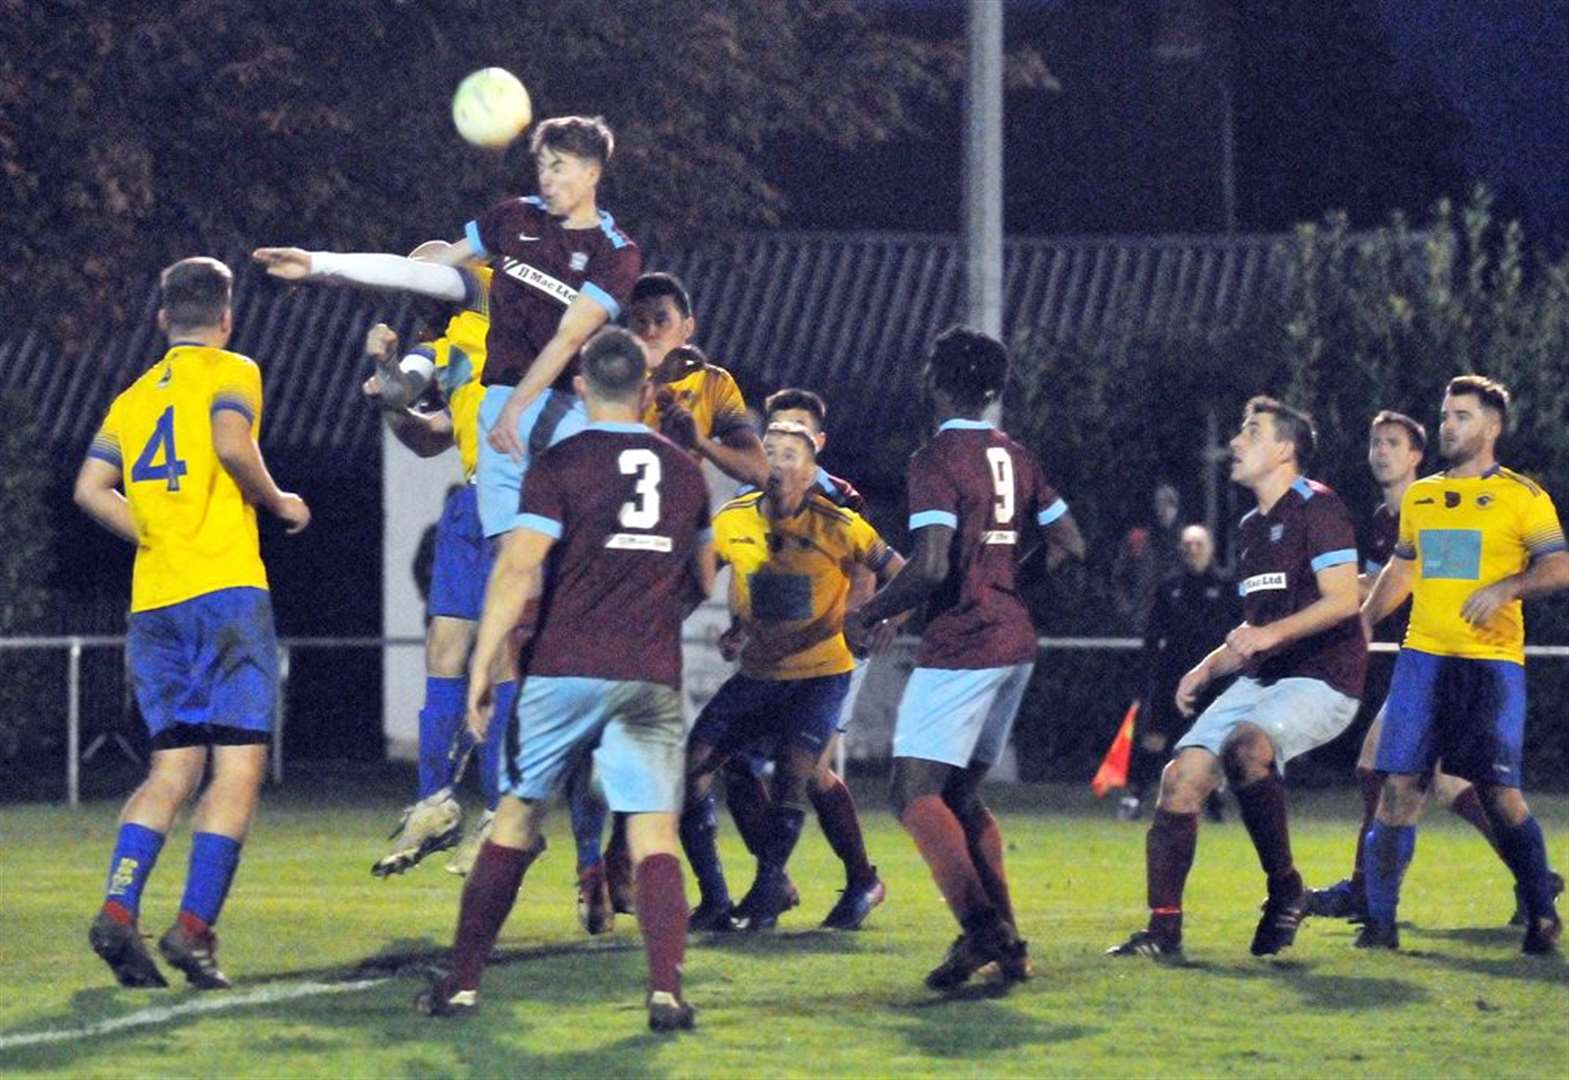 FOOTBALL: No home comfort as Wakes suffer fourth loss in a row